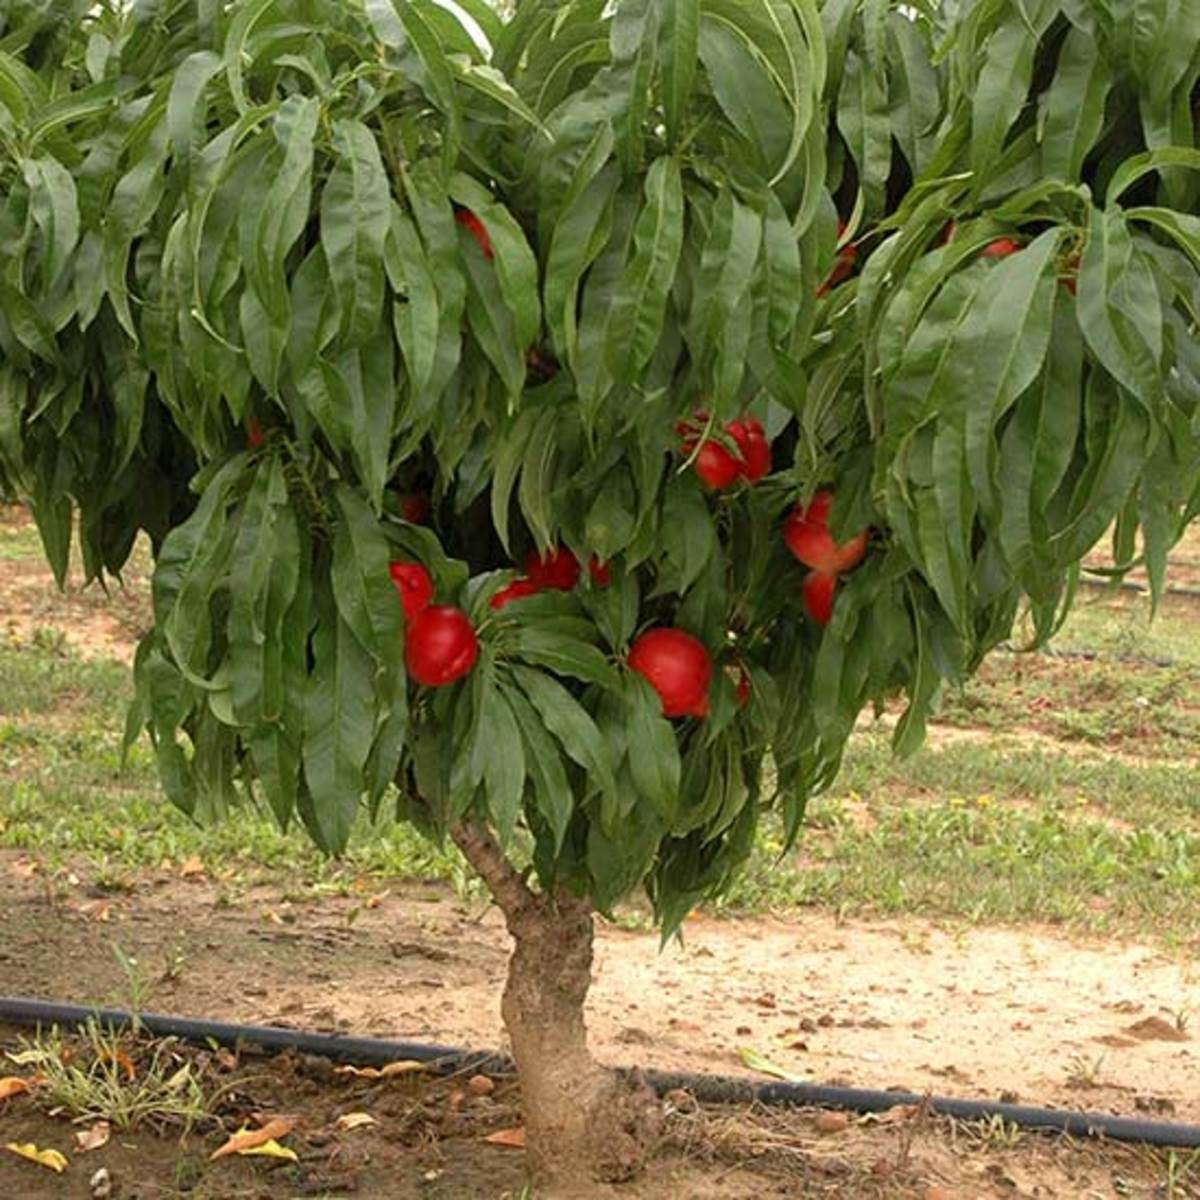 Facts About the Nectarine Tree